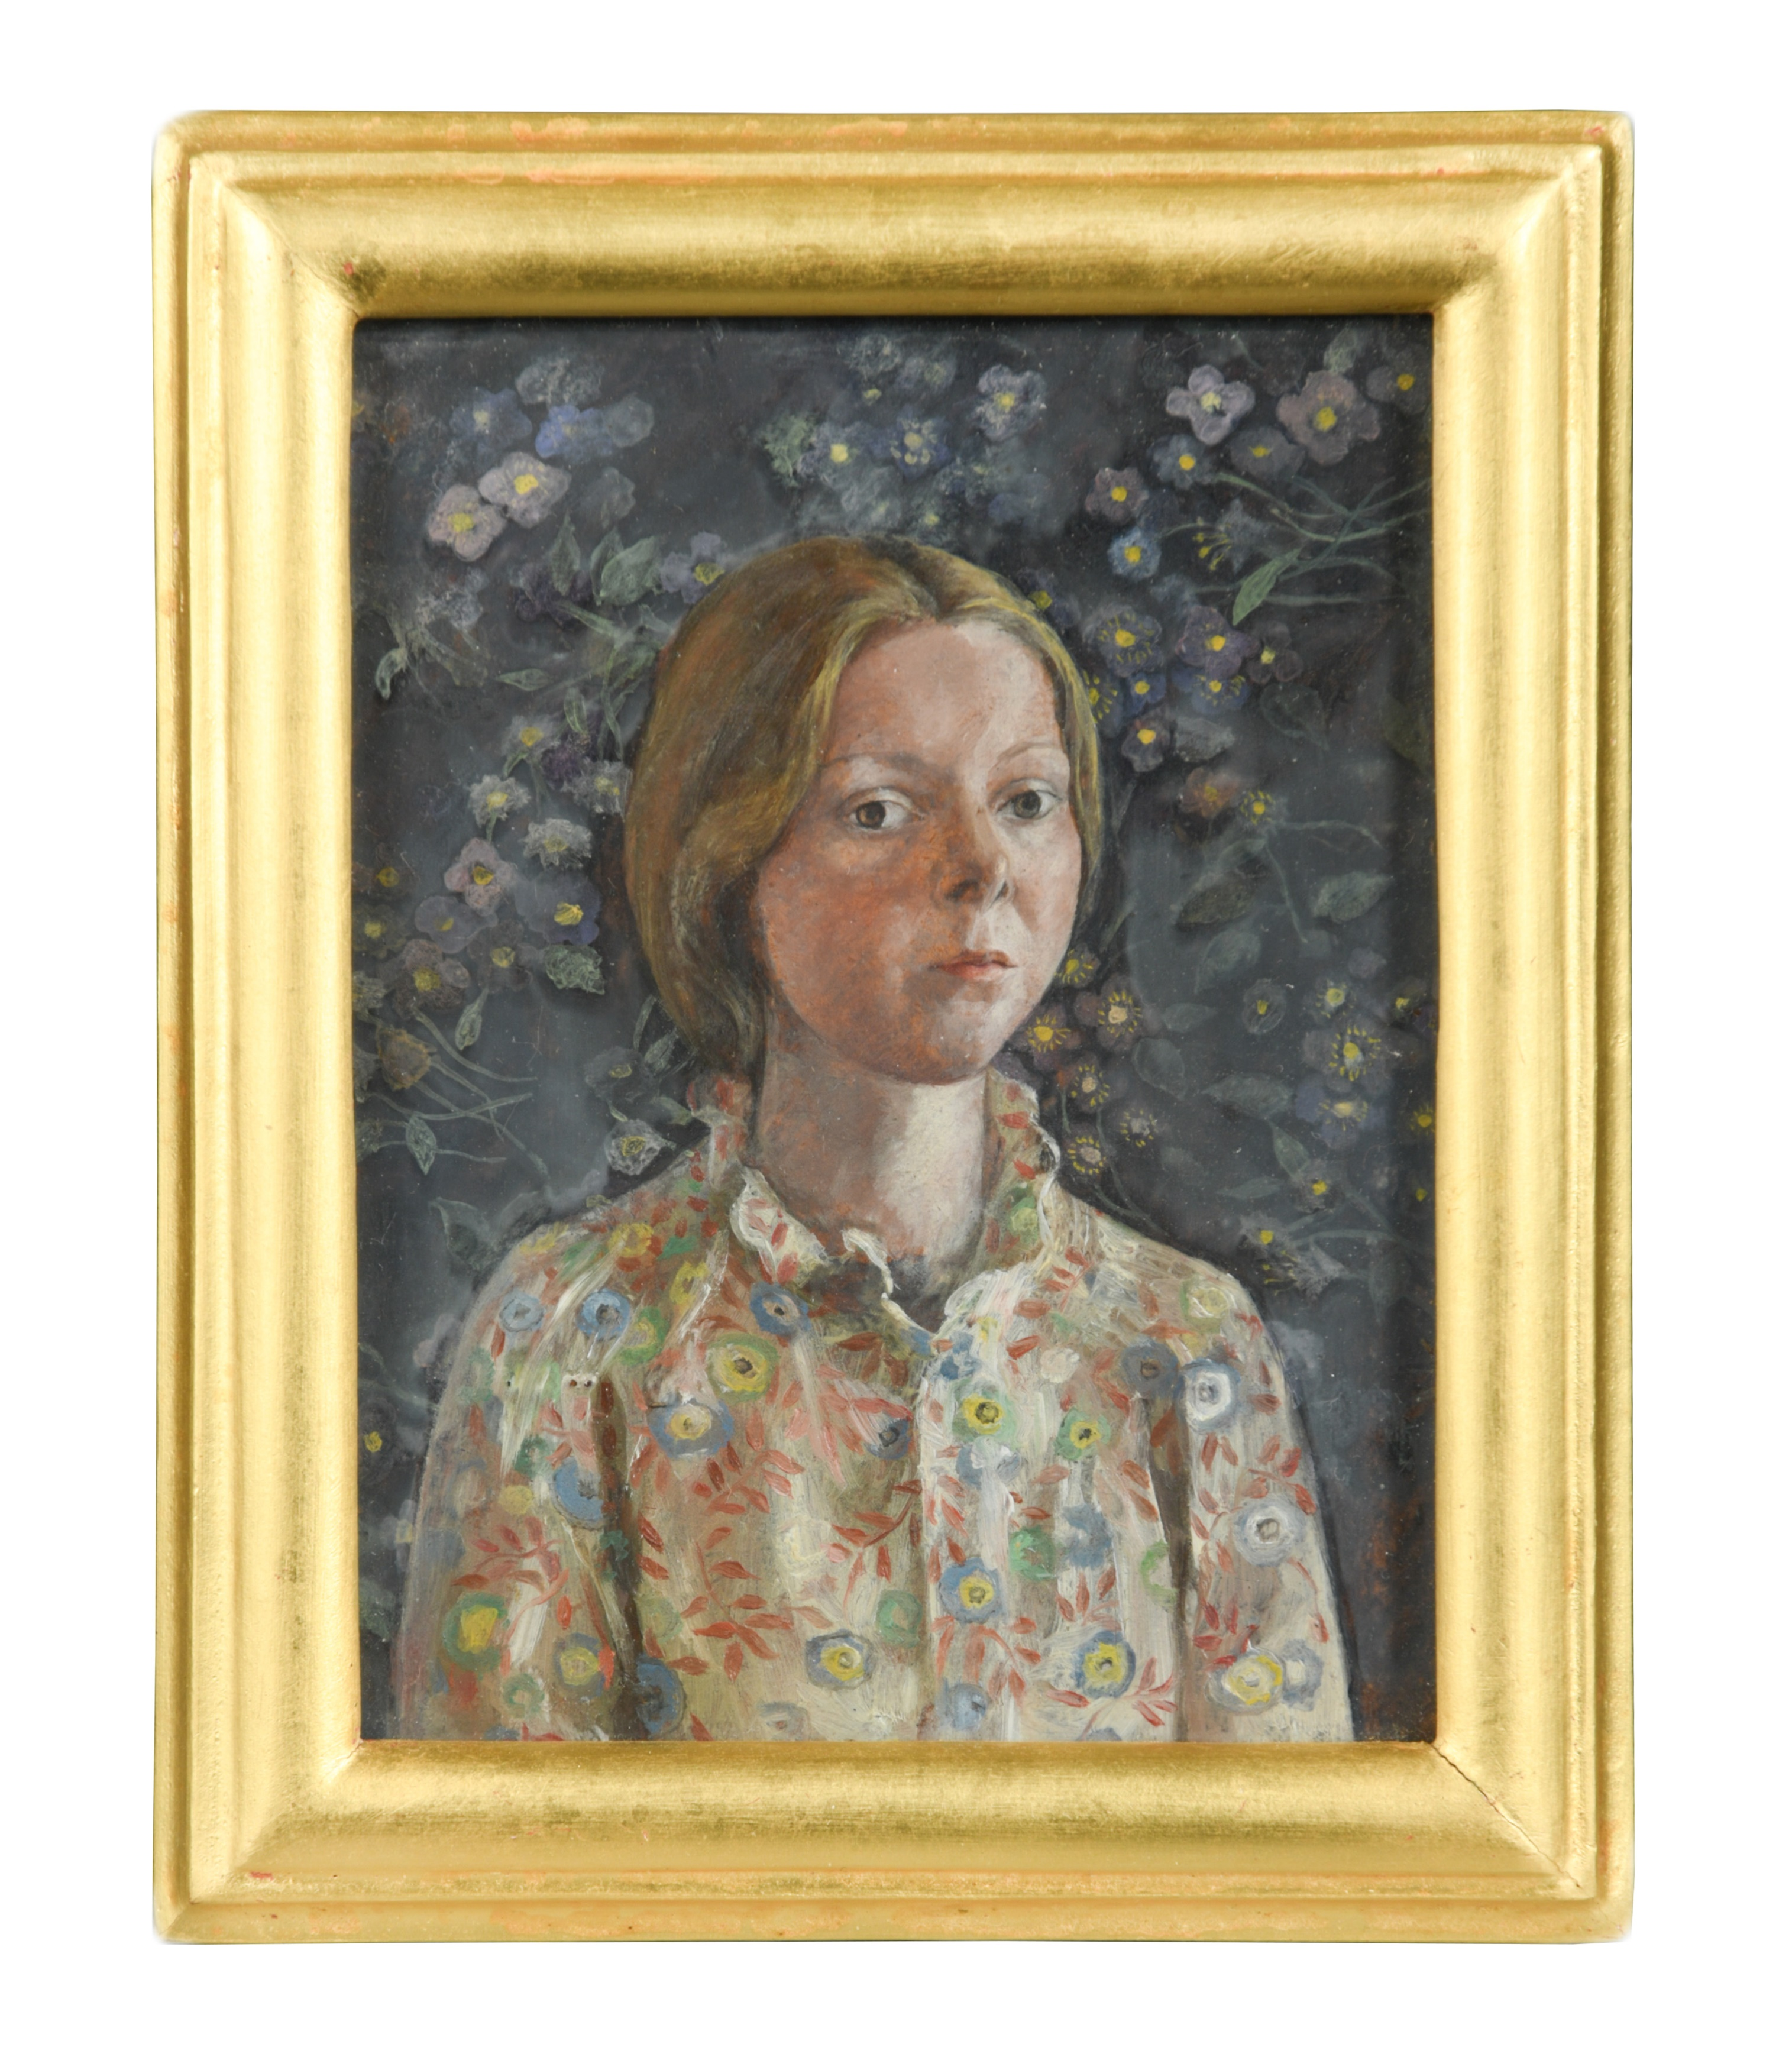 Two miniatures, to include: Mary E. Carter, Self Portrait, oil on board, 9 x 7.5cm; and G. London - Image 2 of 2